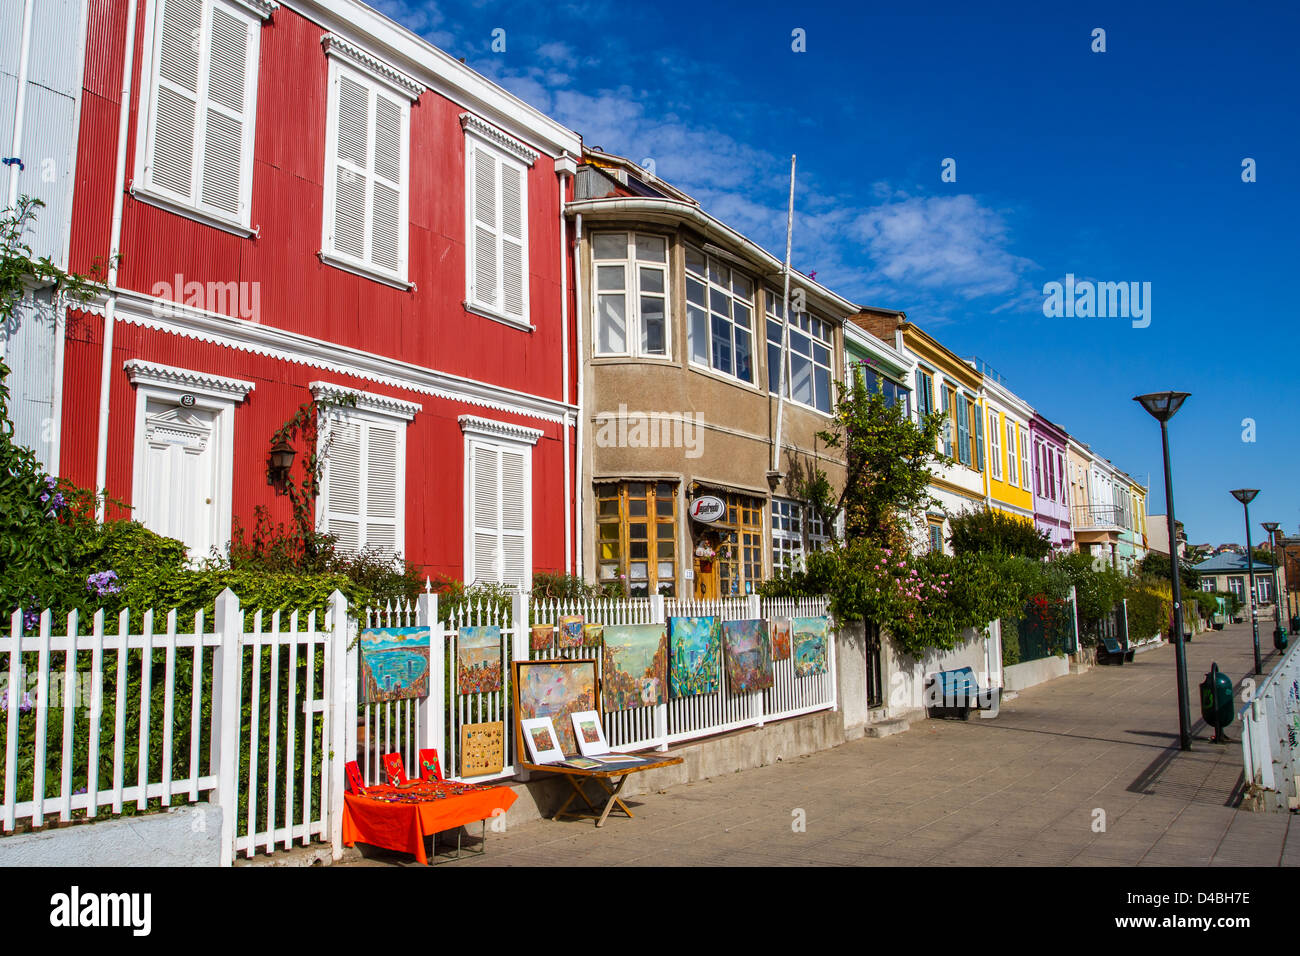 A vibrant street with a row of colourful houses in Valparaiso, Chile, UNESCO World Heritage site - Stock Image